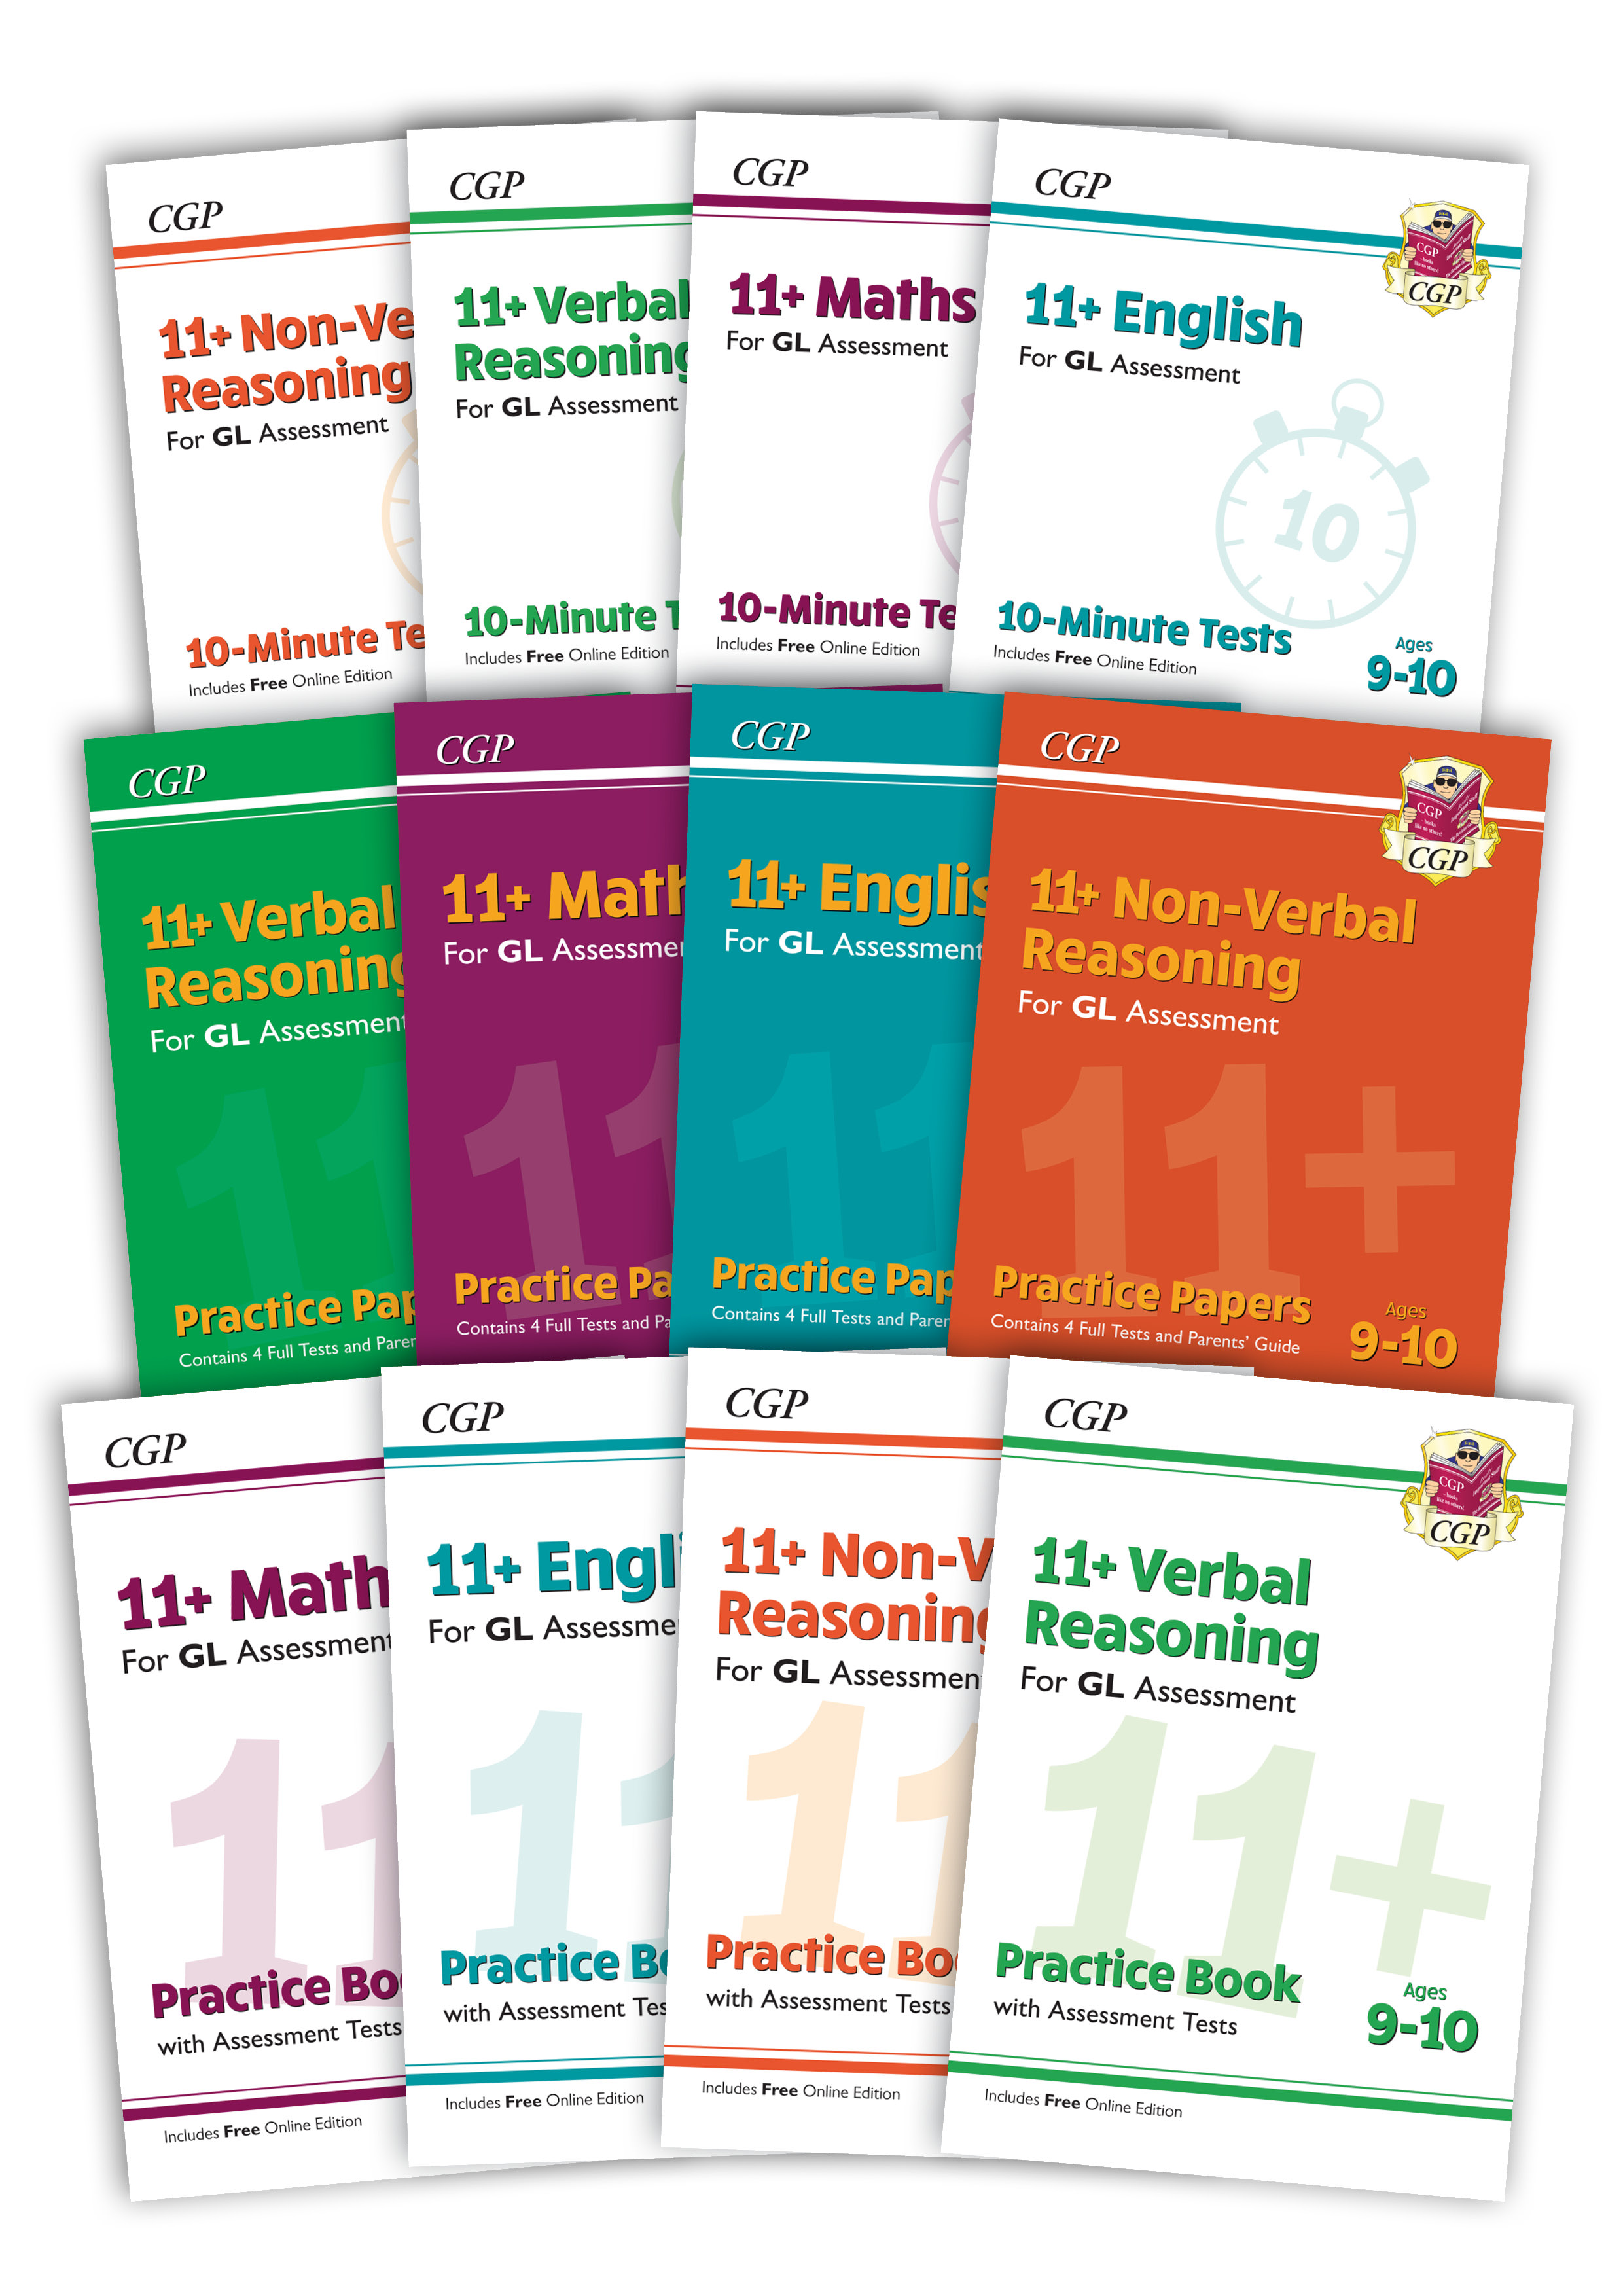 EL5BE4 - 11+ GL & Other Test Providers Practice 12-book Bundle - for Ages 9-10